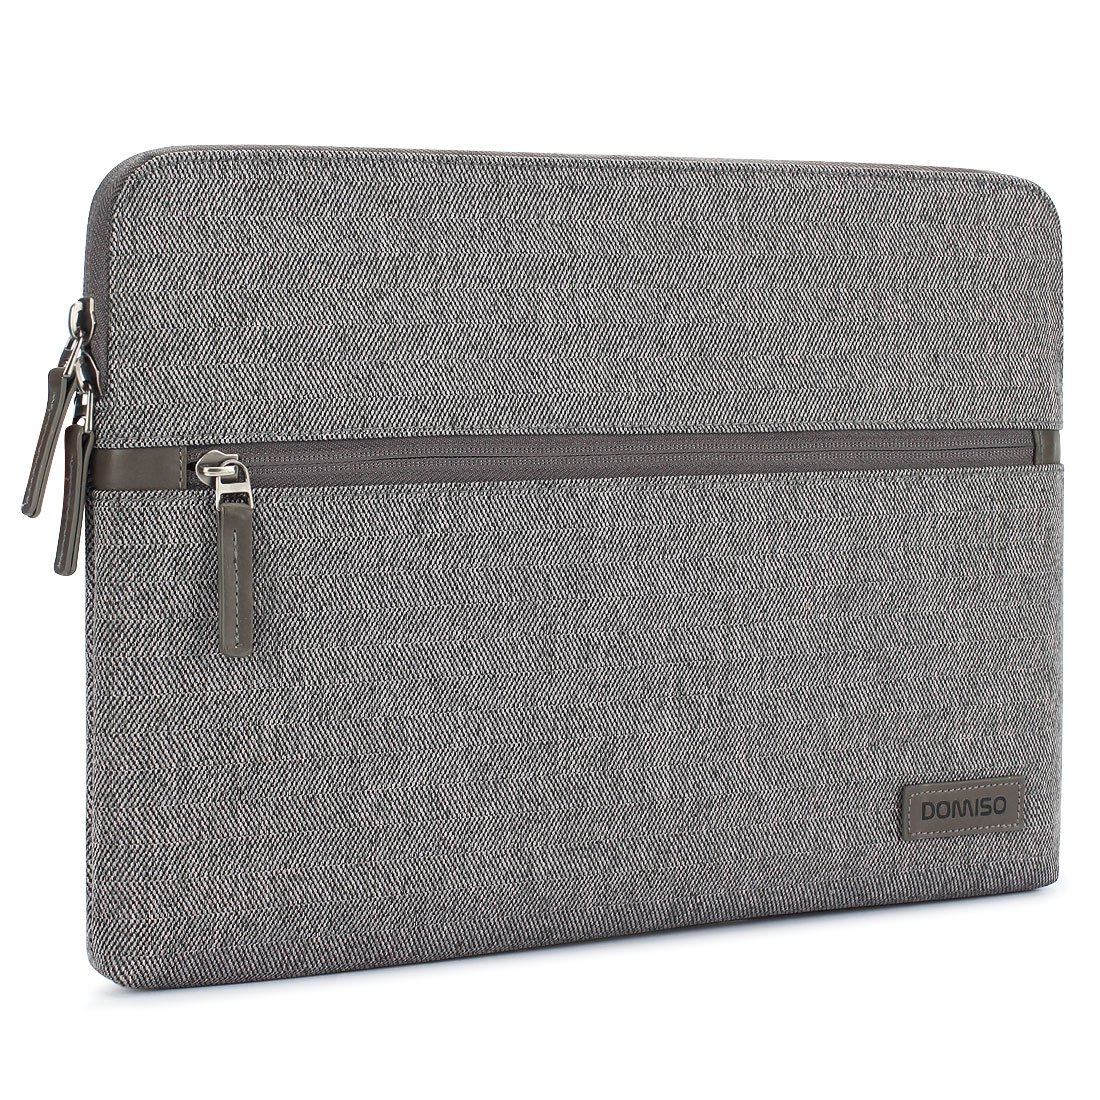 DOMISO 13.3 Inch Laptop Sleeve Canvas Tablet Pouch Bag for 13-13.3 Inch Laptops/13'' MacBook Pro Retina/Dell Inspiron 13 XPS 13/Lenovo YOGA 720 13.3''/ASUS/Acer/HP/MSI, Grey